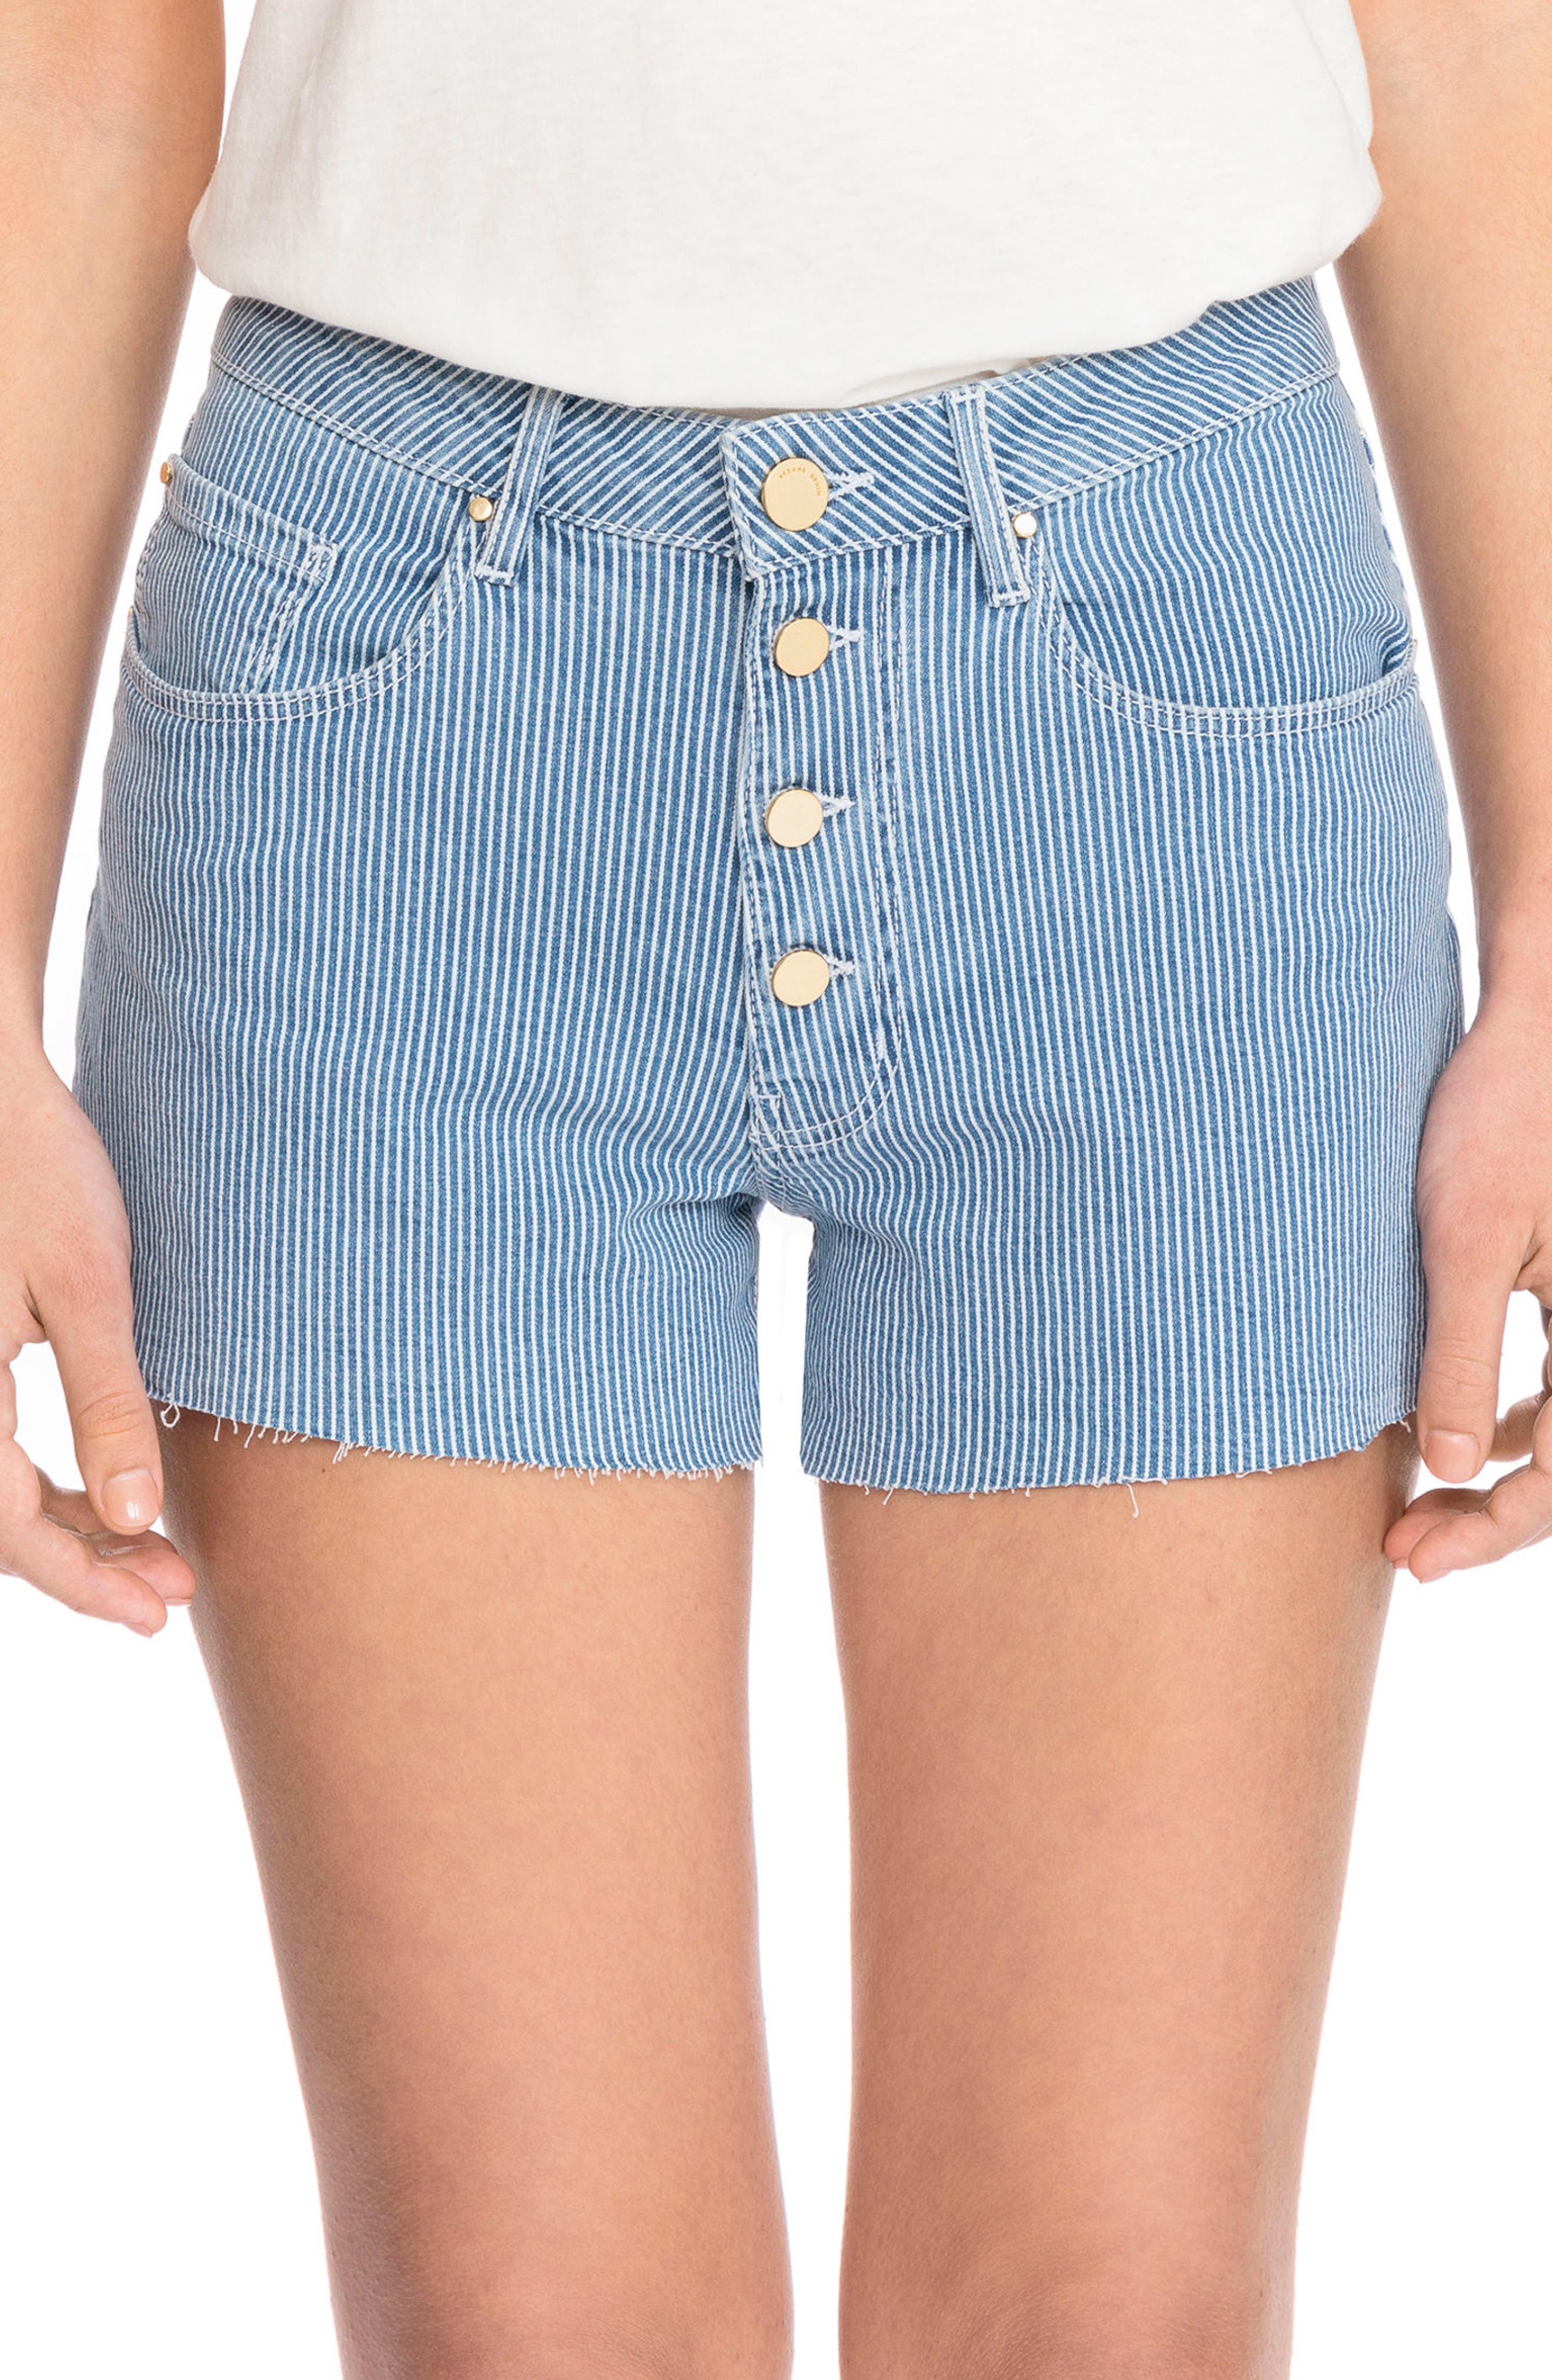 1968 Stripe Cutoff Denim Shorts,                         Main,                         color, Off White And Blue Stripes